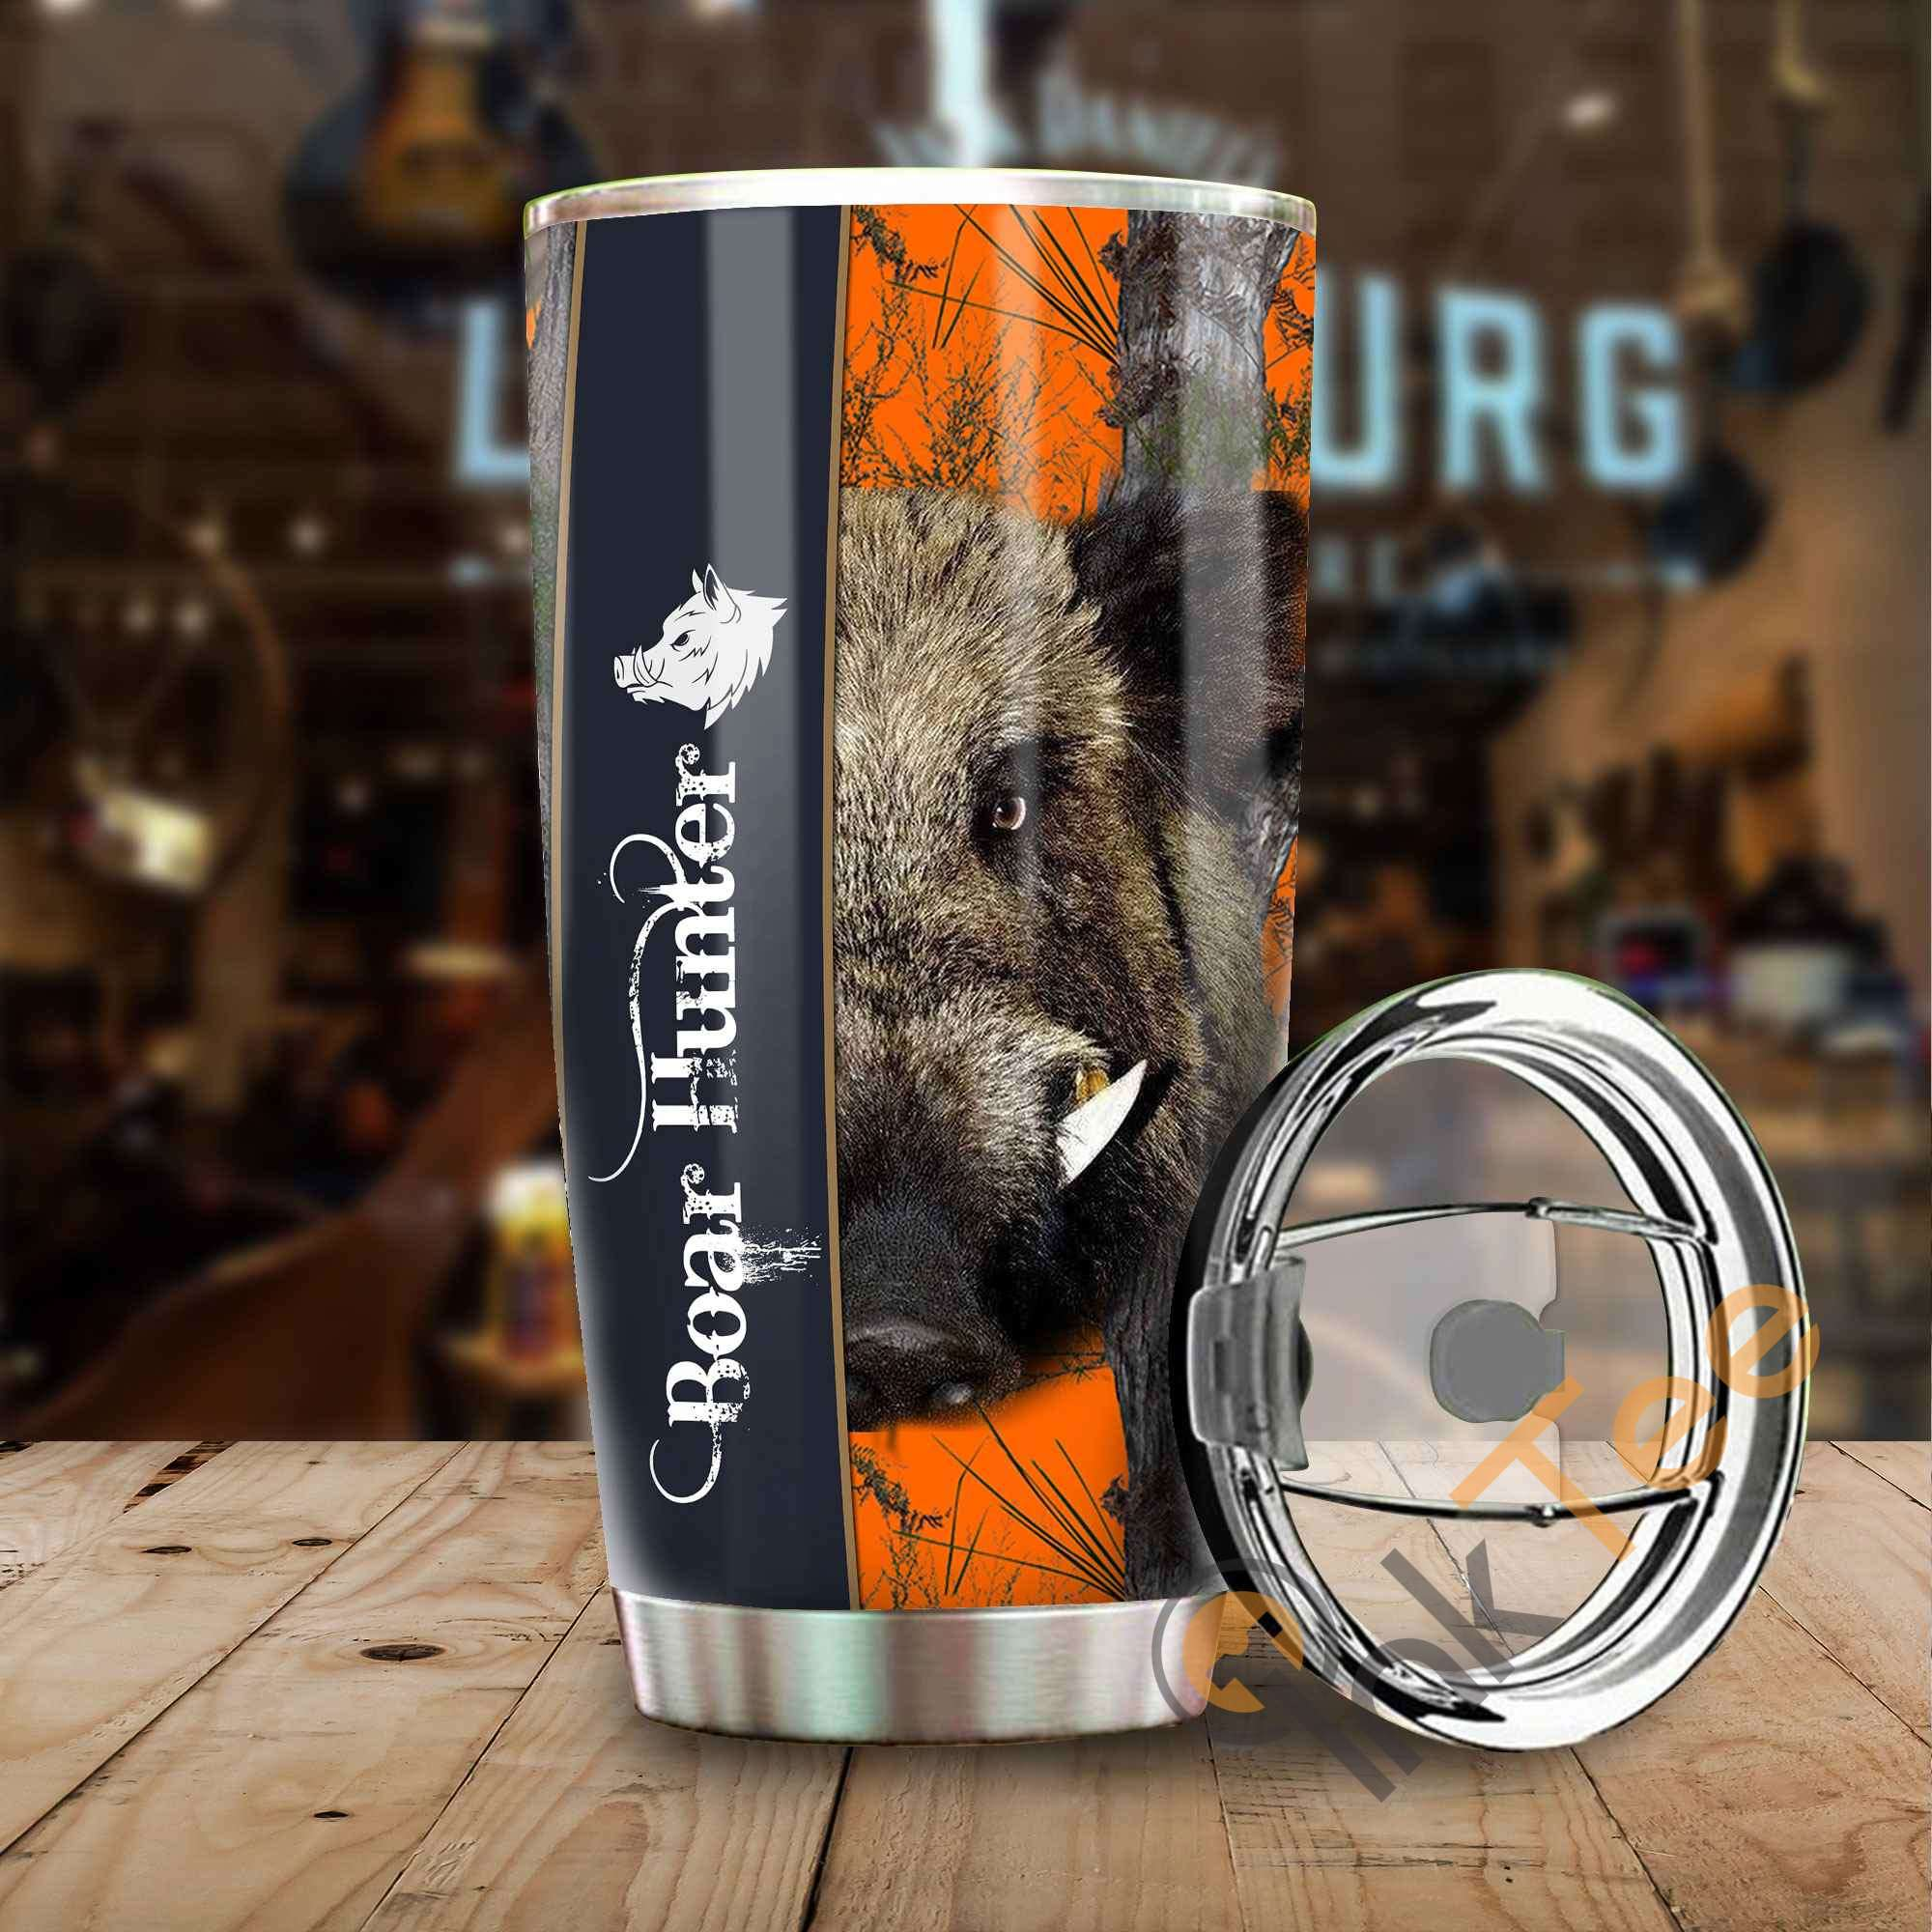 Boar Hunter Amazon Best Seller Sku 3546 Stainless Steel Tumbler